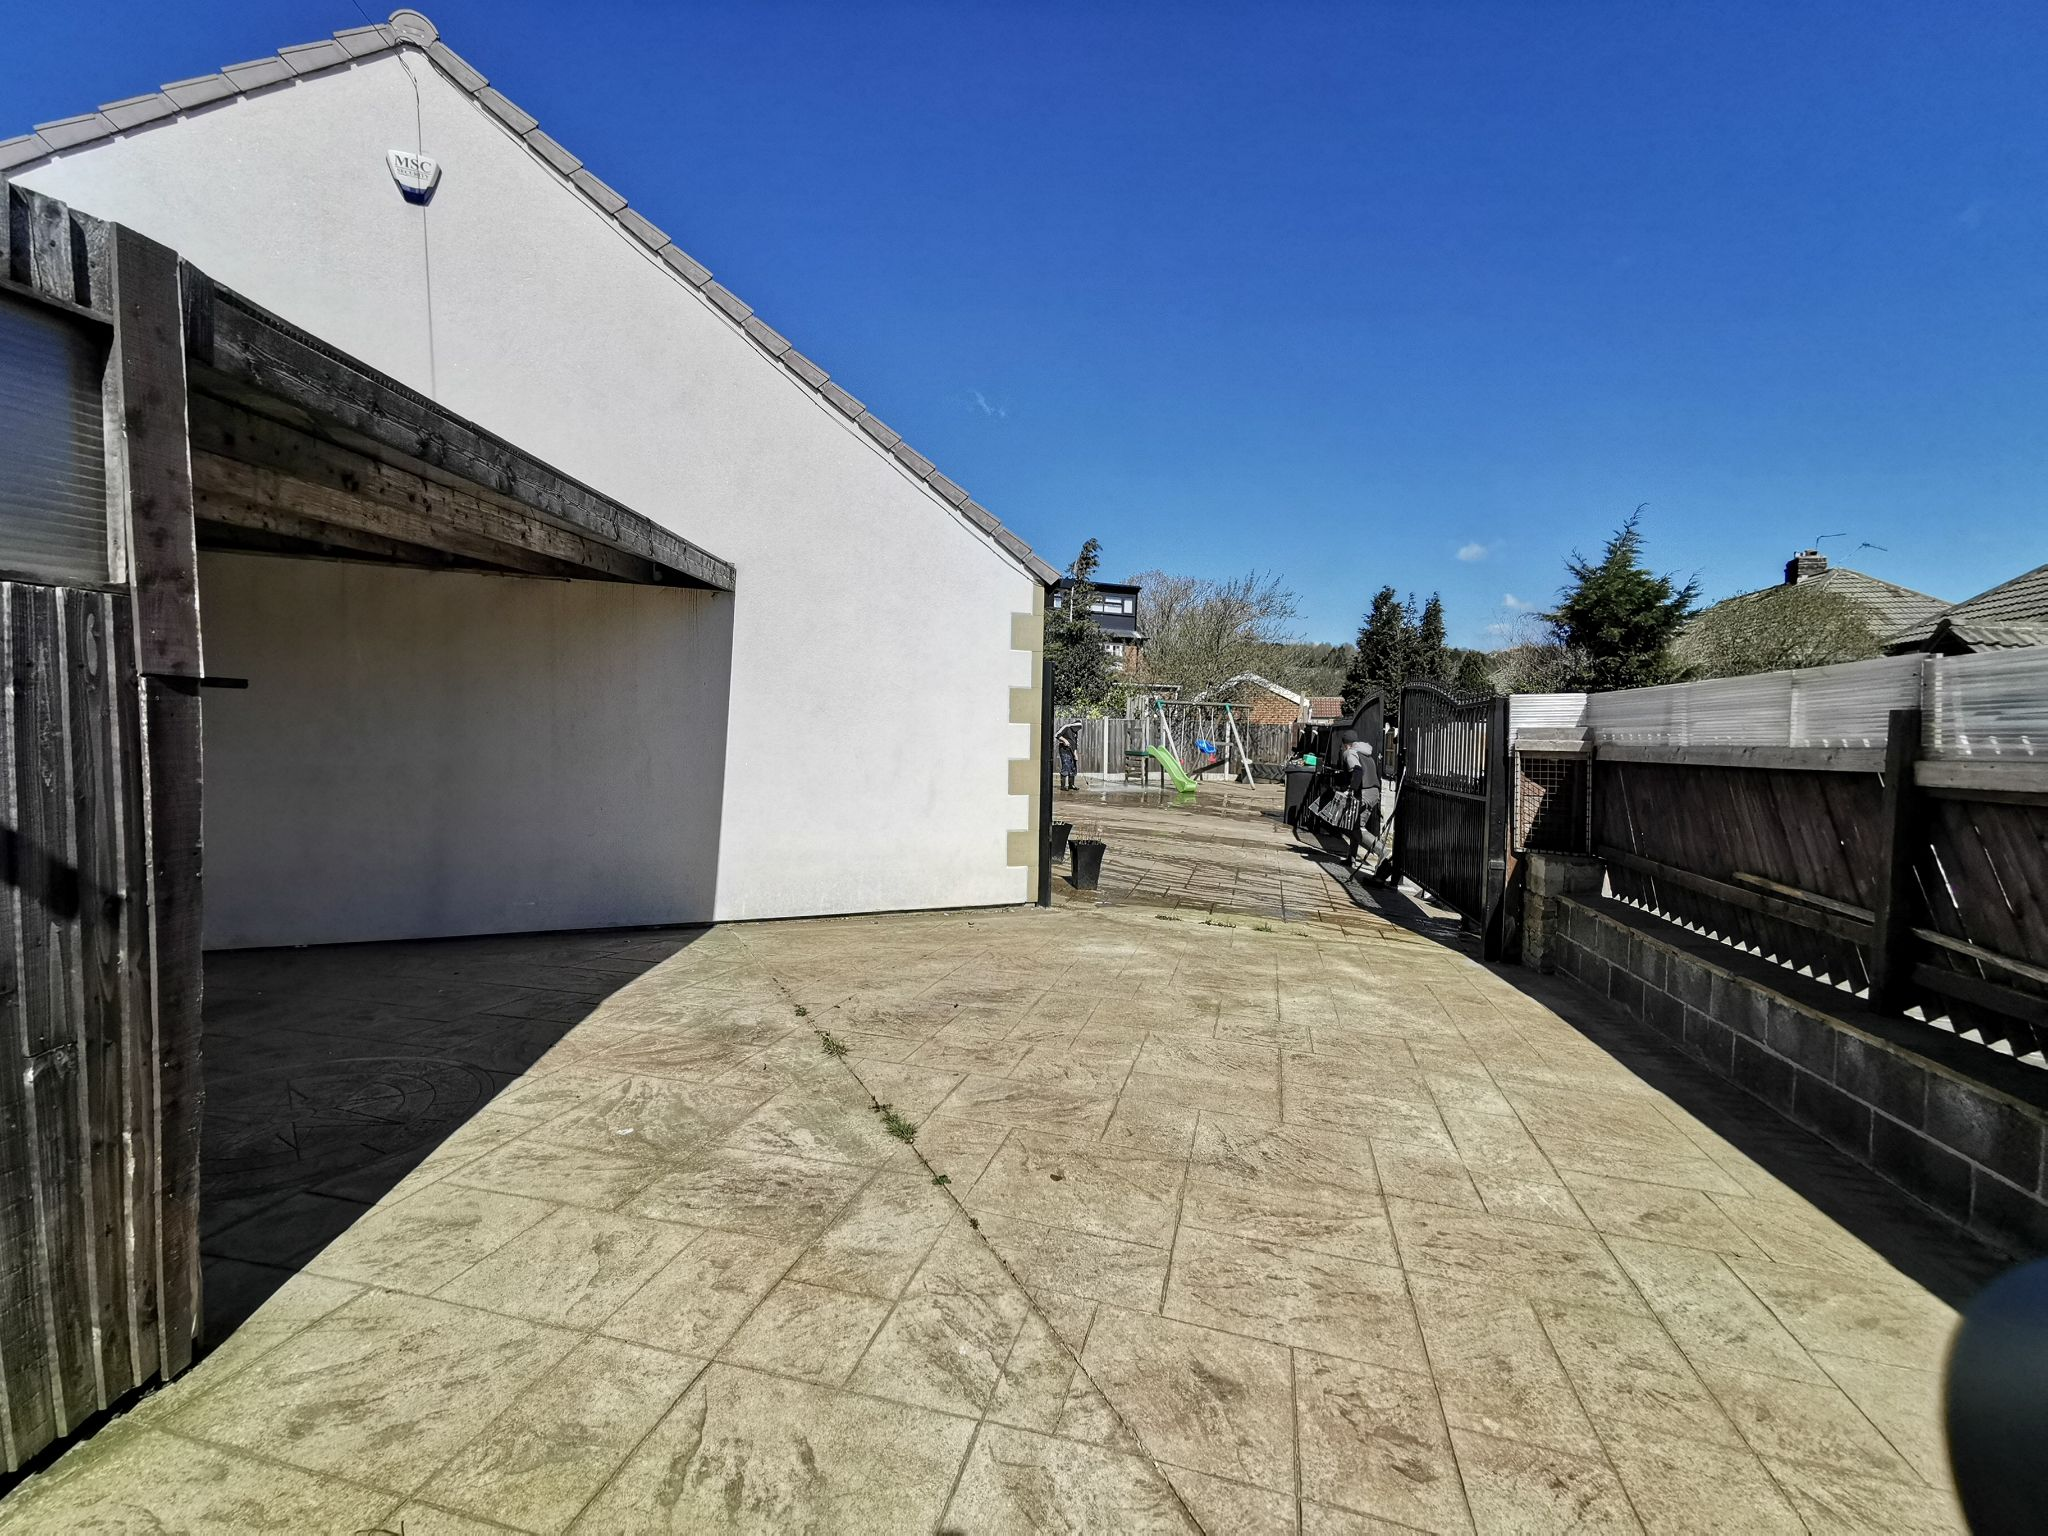 6 bedroom detached bungalow For Sale in Bradford - Photograph 11.